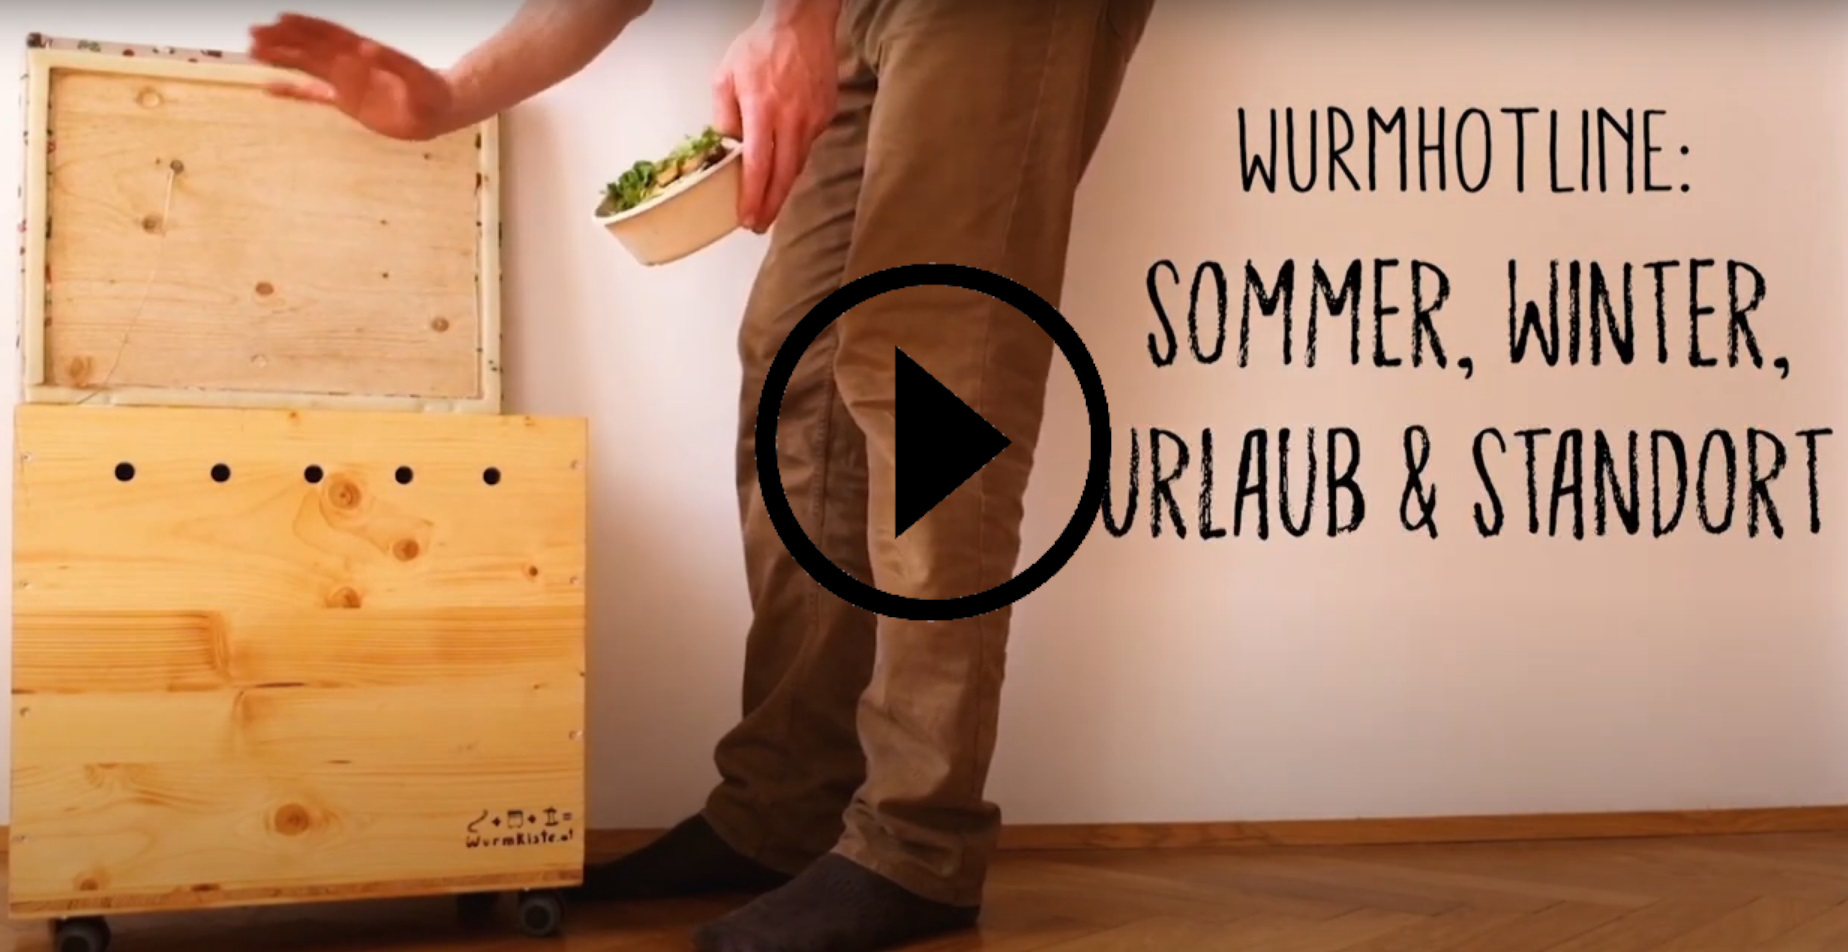 Video Urlaub